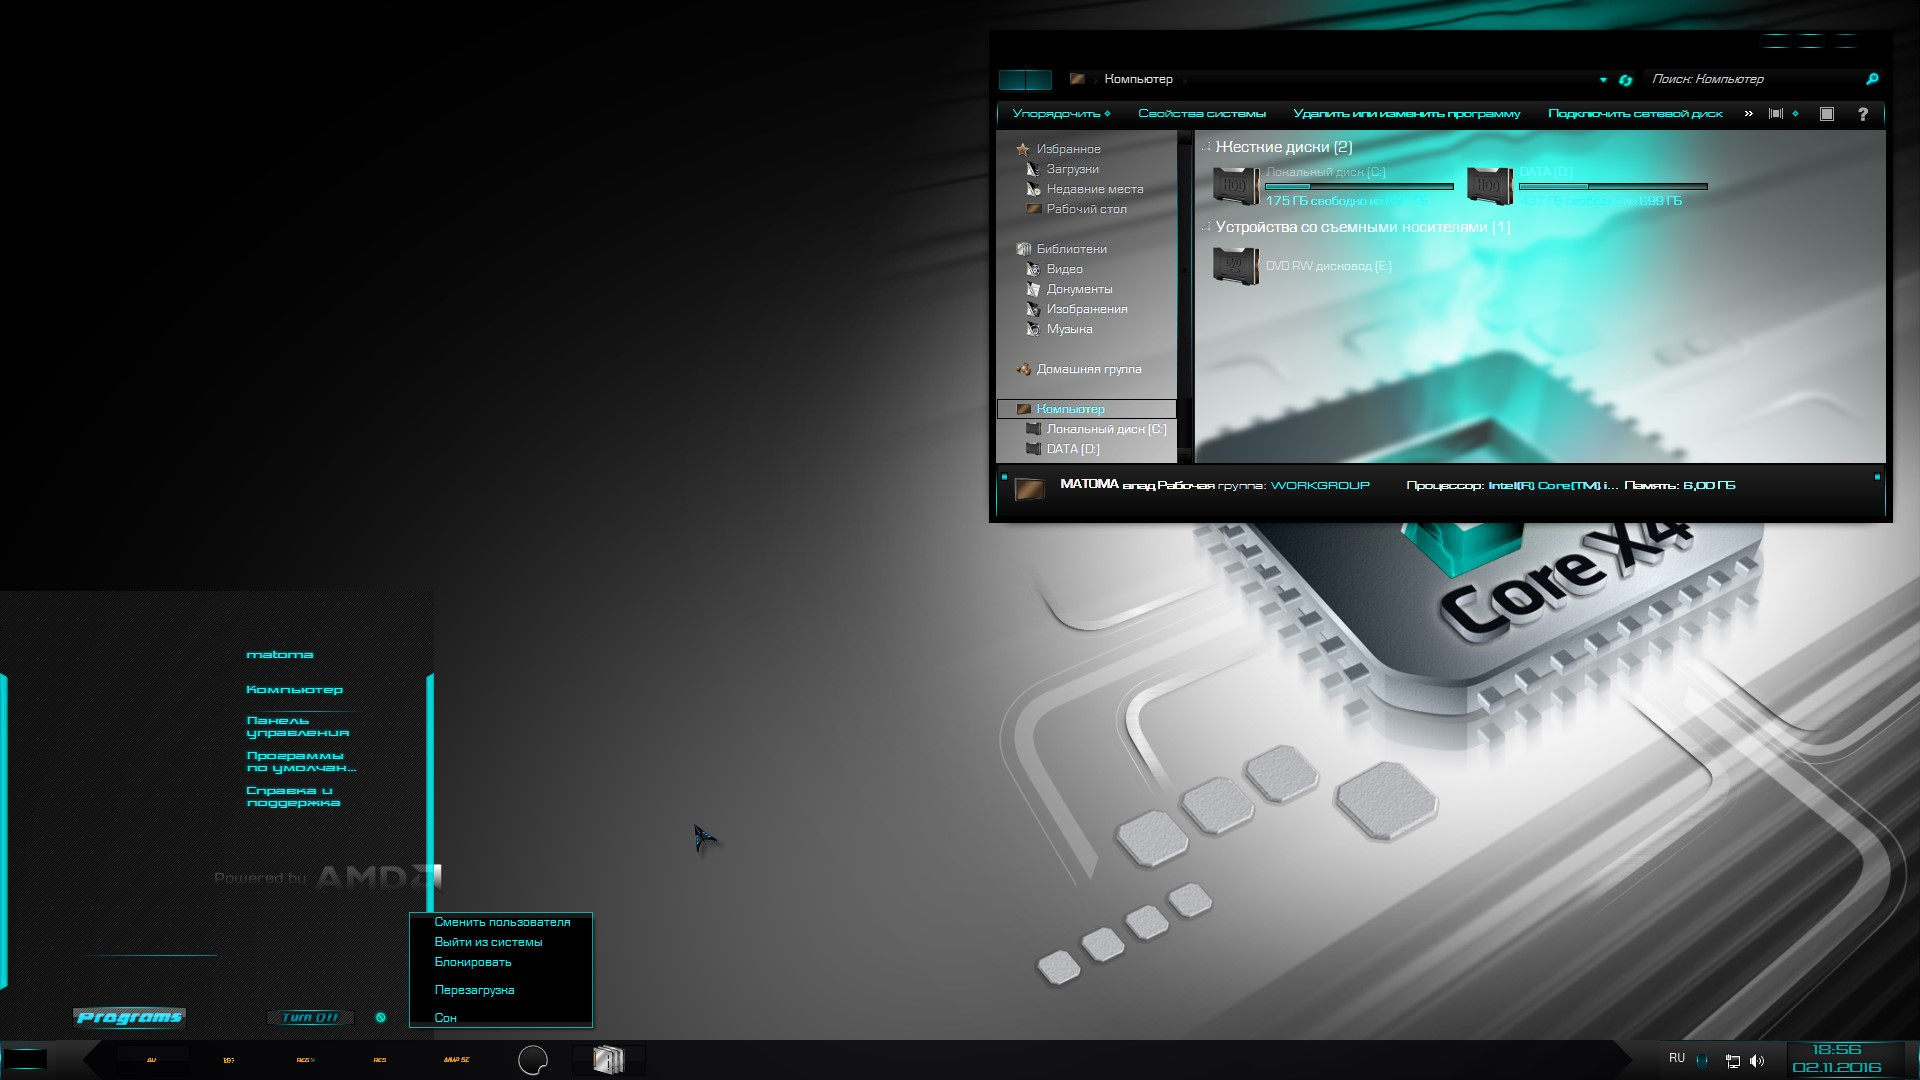 Rounded Windows 7 Theme by Pro Designer 50210